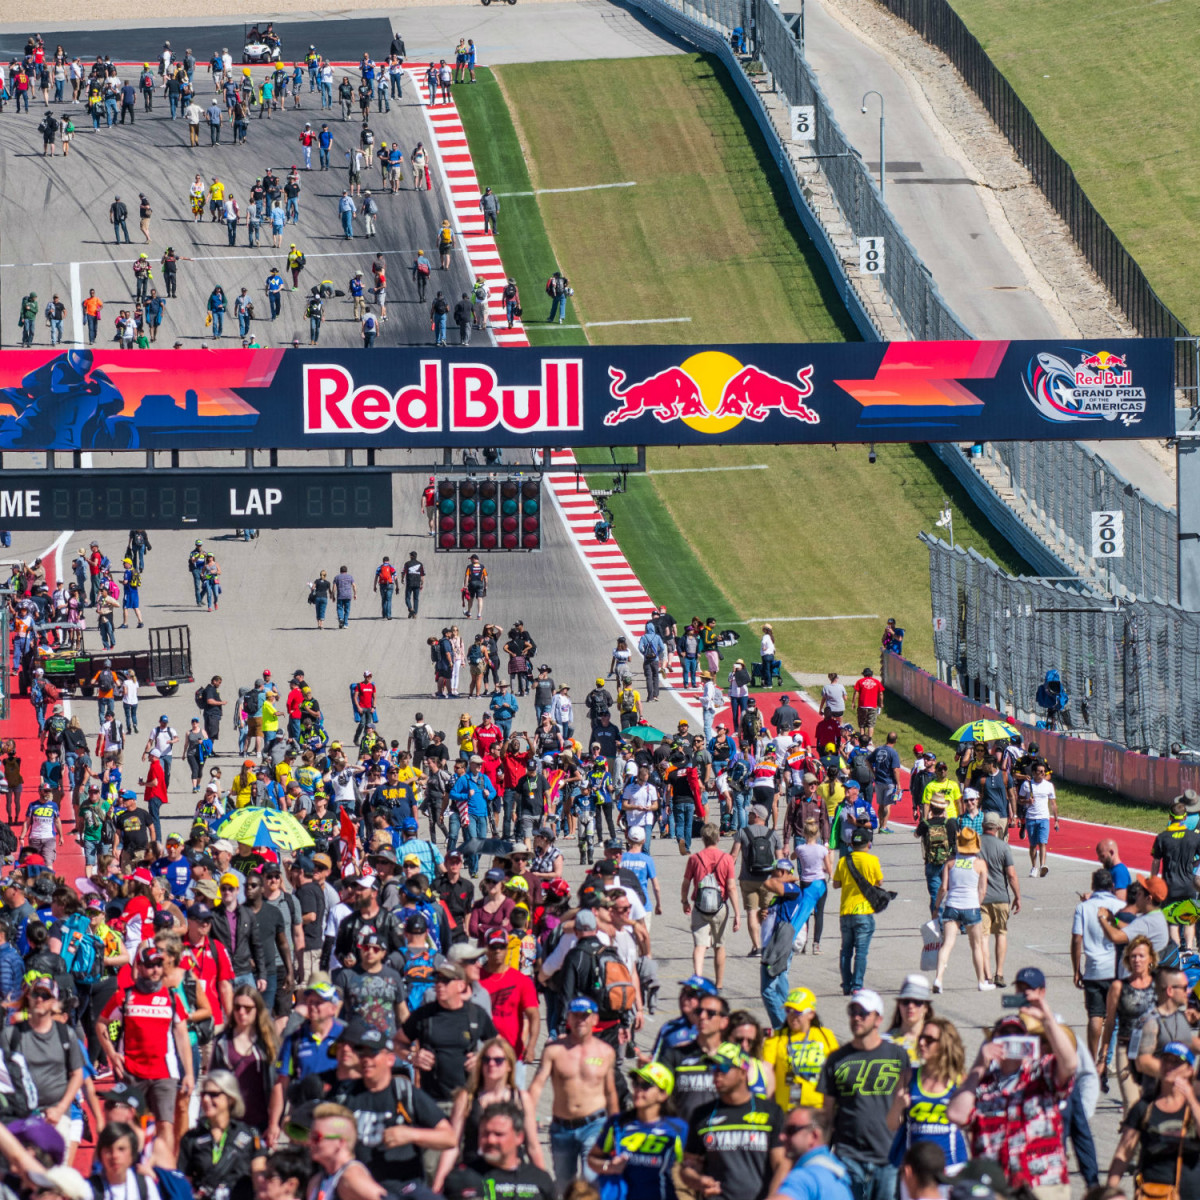 2018 MotoGP™ Red Bull Grand Prix of The Americas